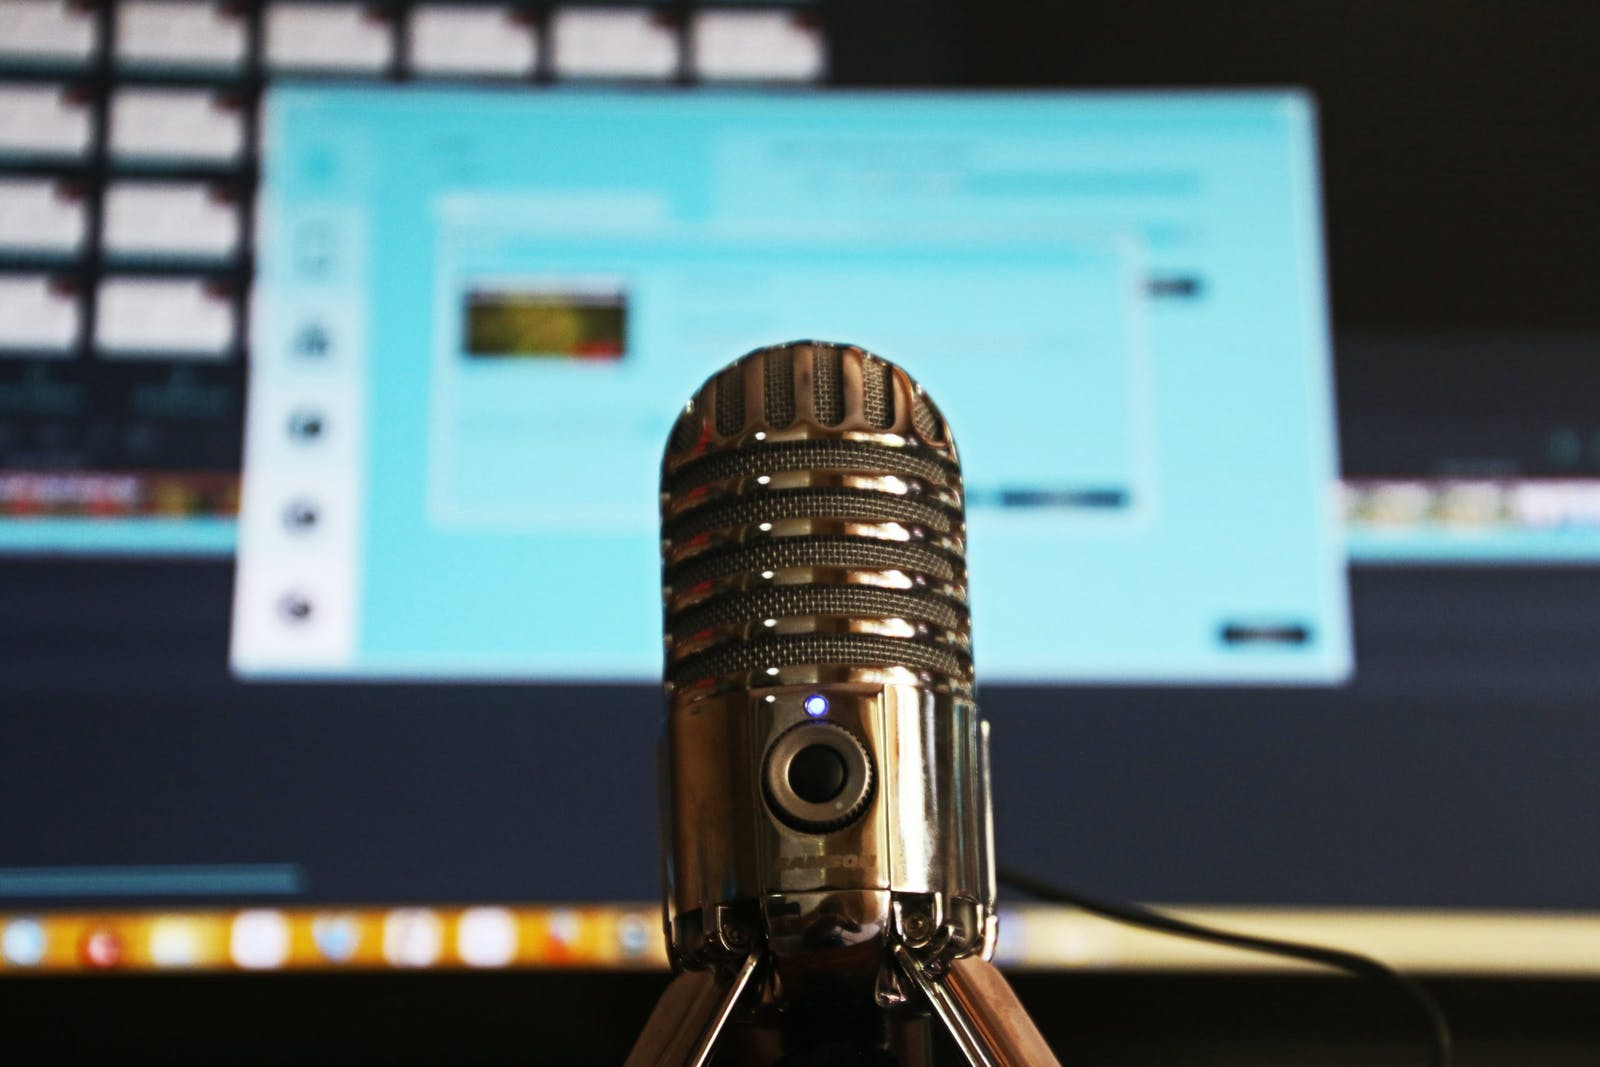 Gold microphone in studio in front of computer screen